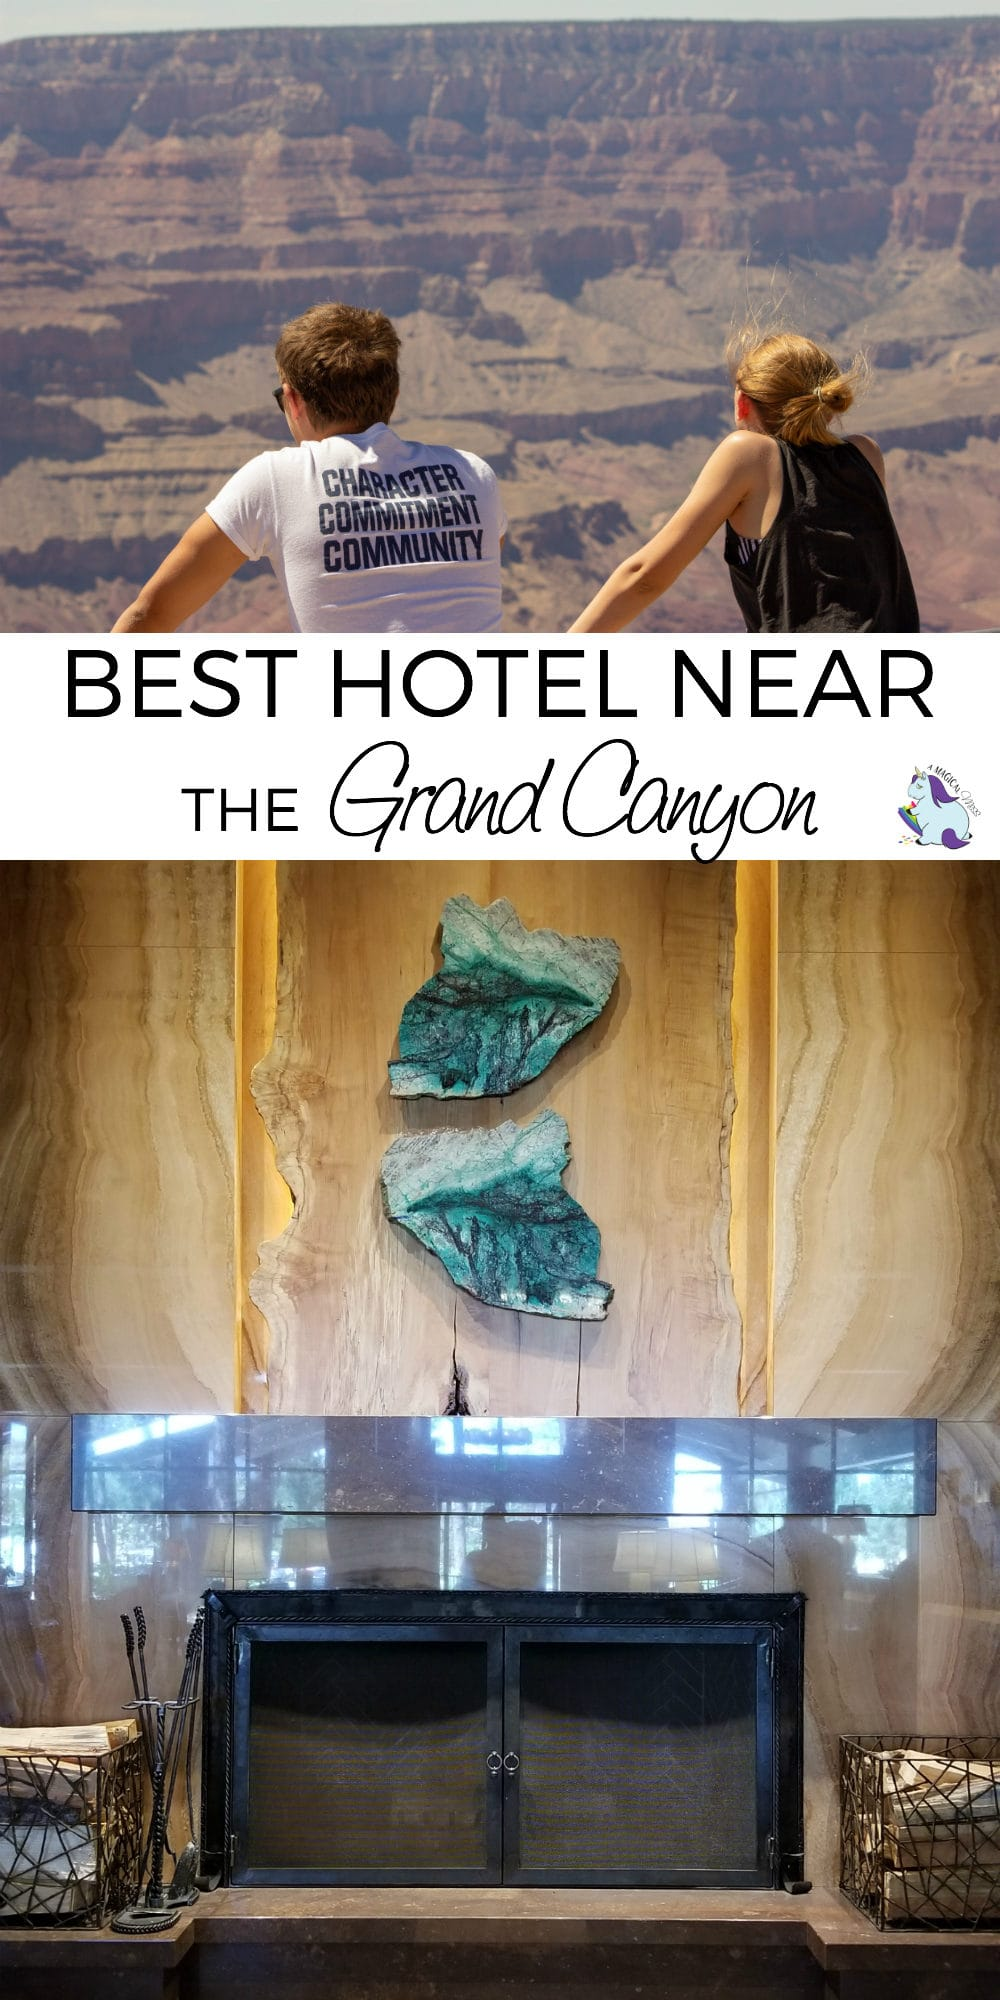 The best hotels near the Grand Canyon -- the top is Little America in Flagstaff